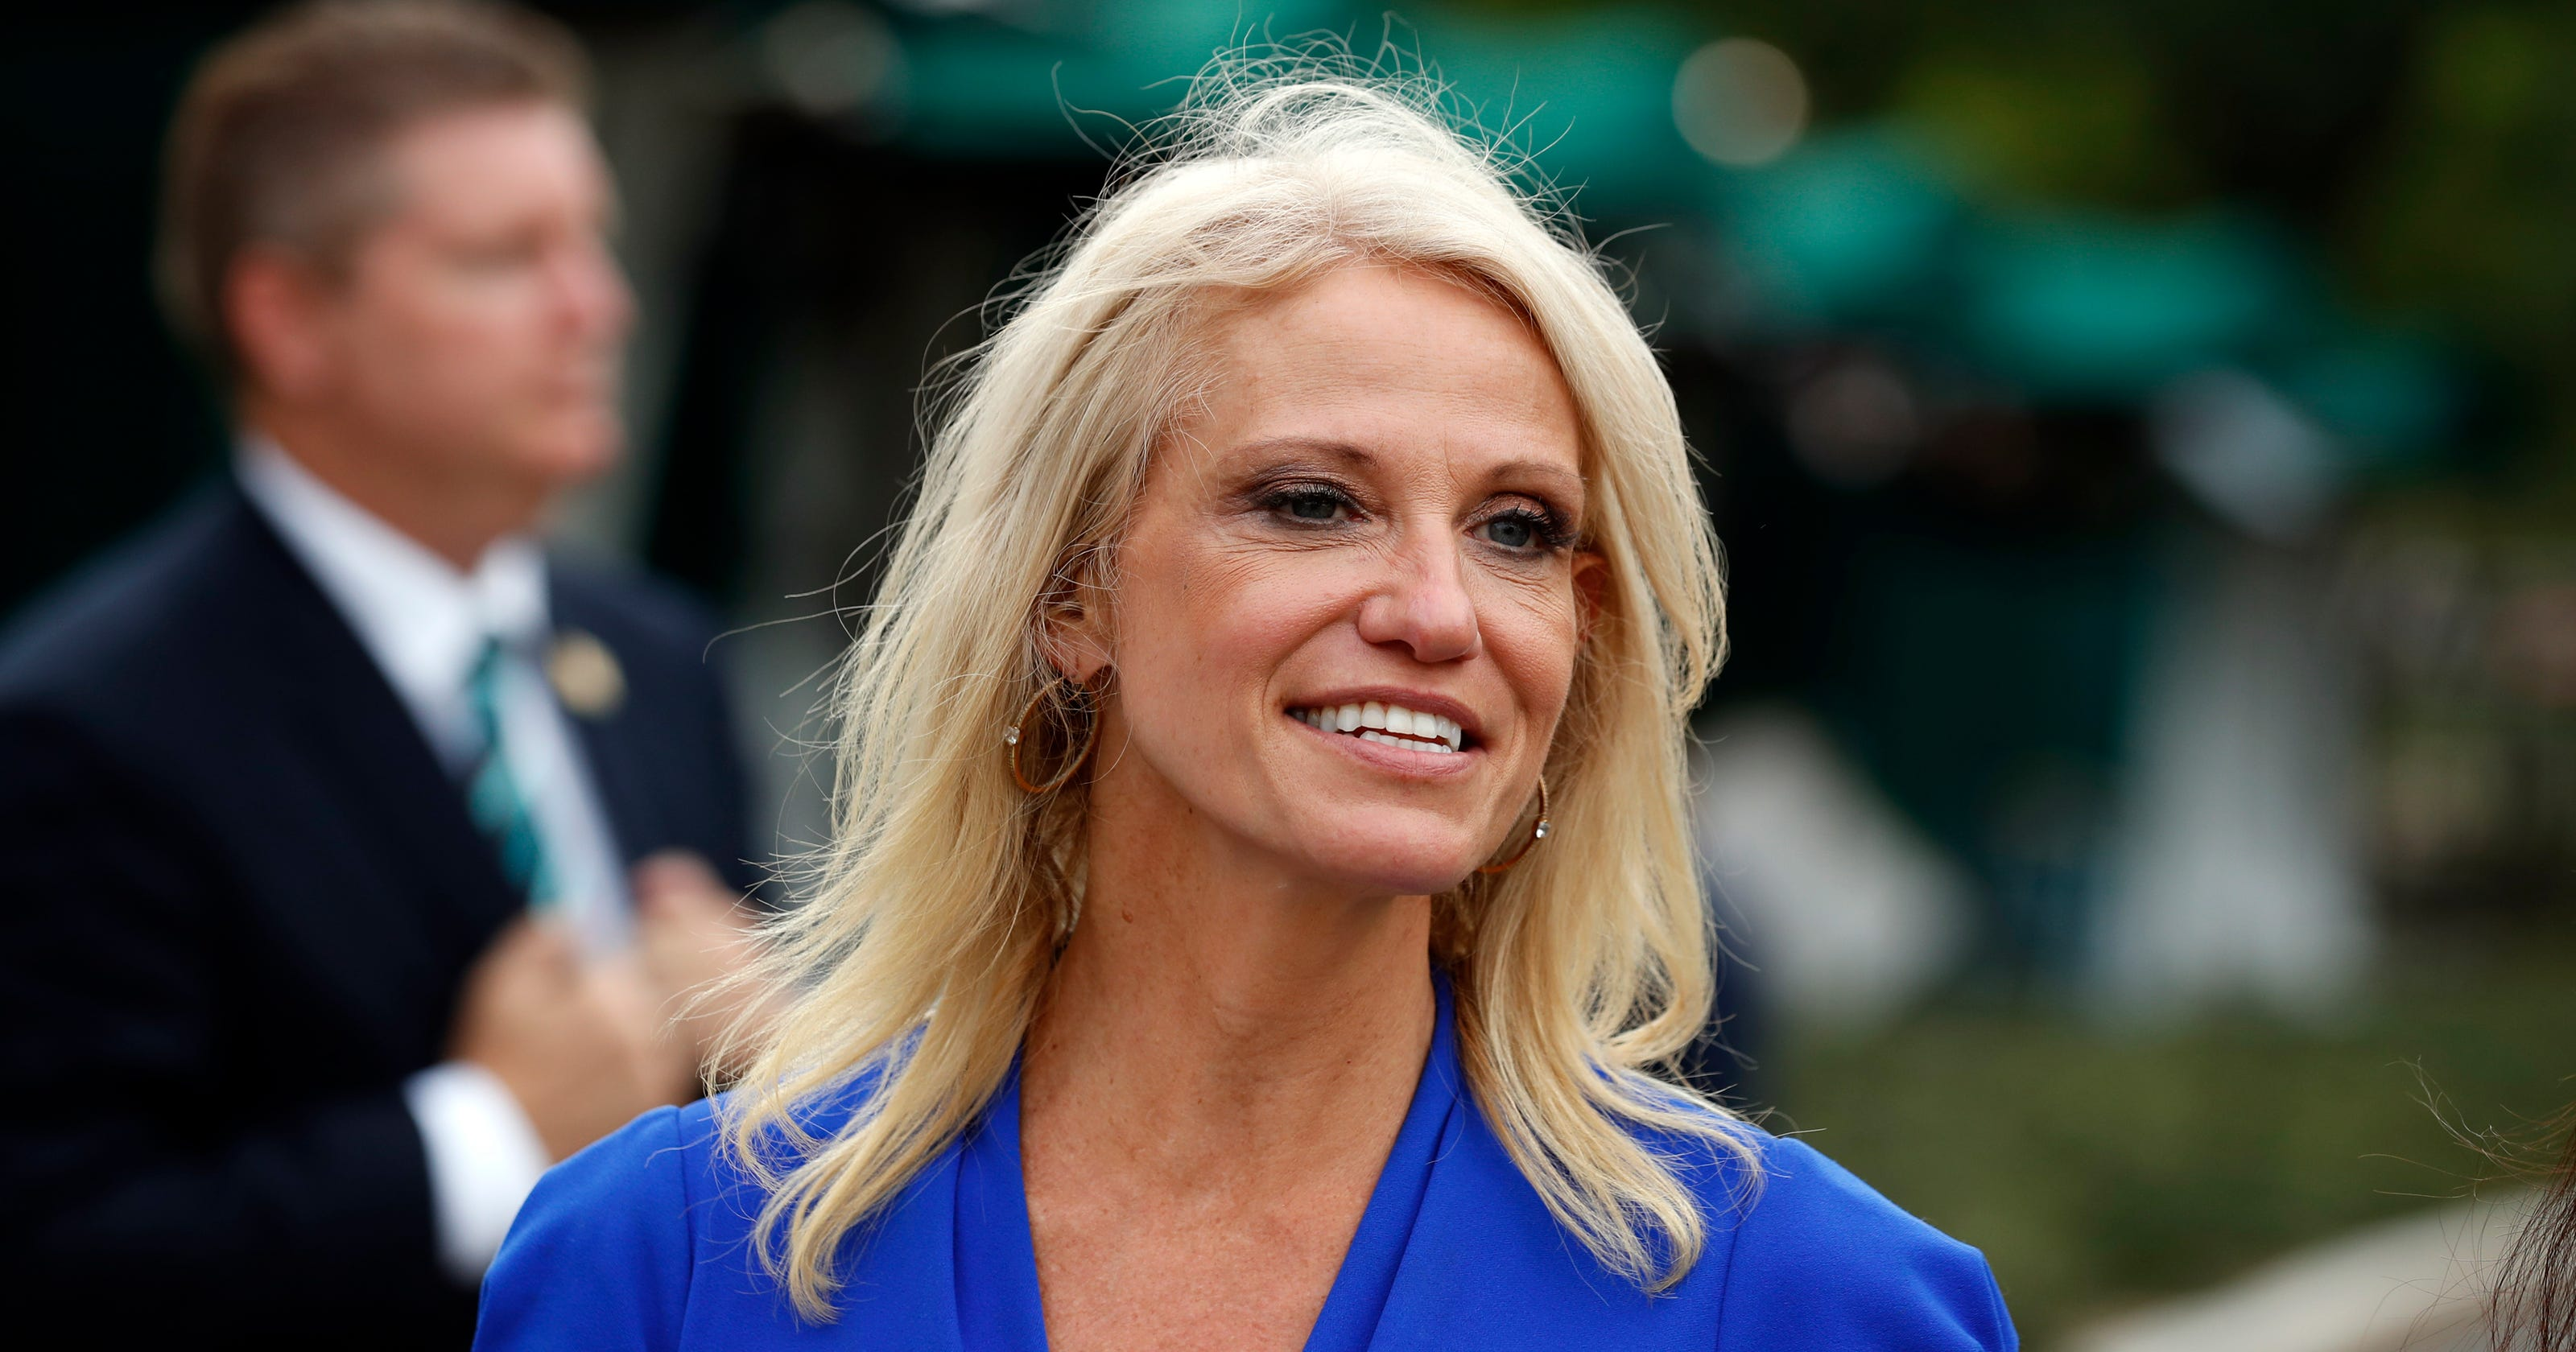 kellyanne conway trumps adviser media is not enemy of the people - Christmas In Conway Cast